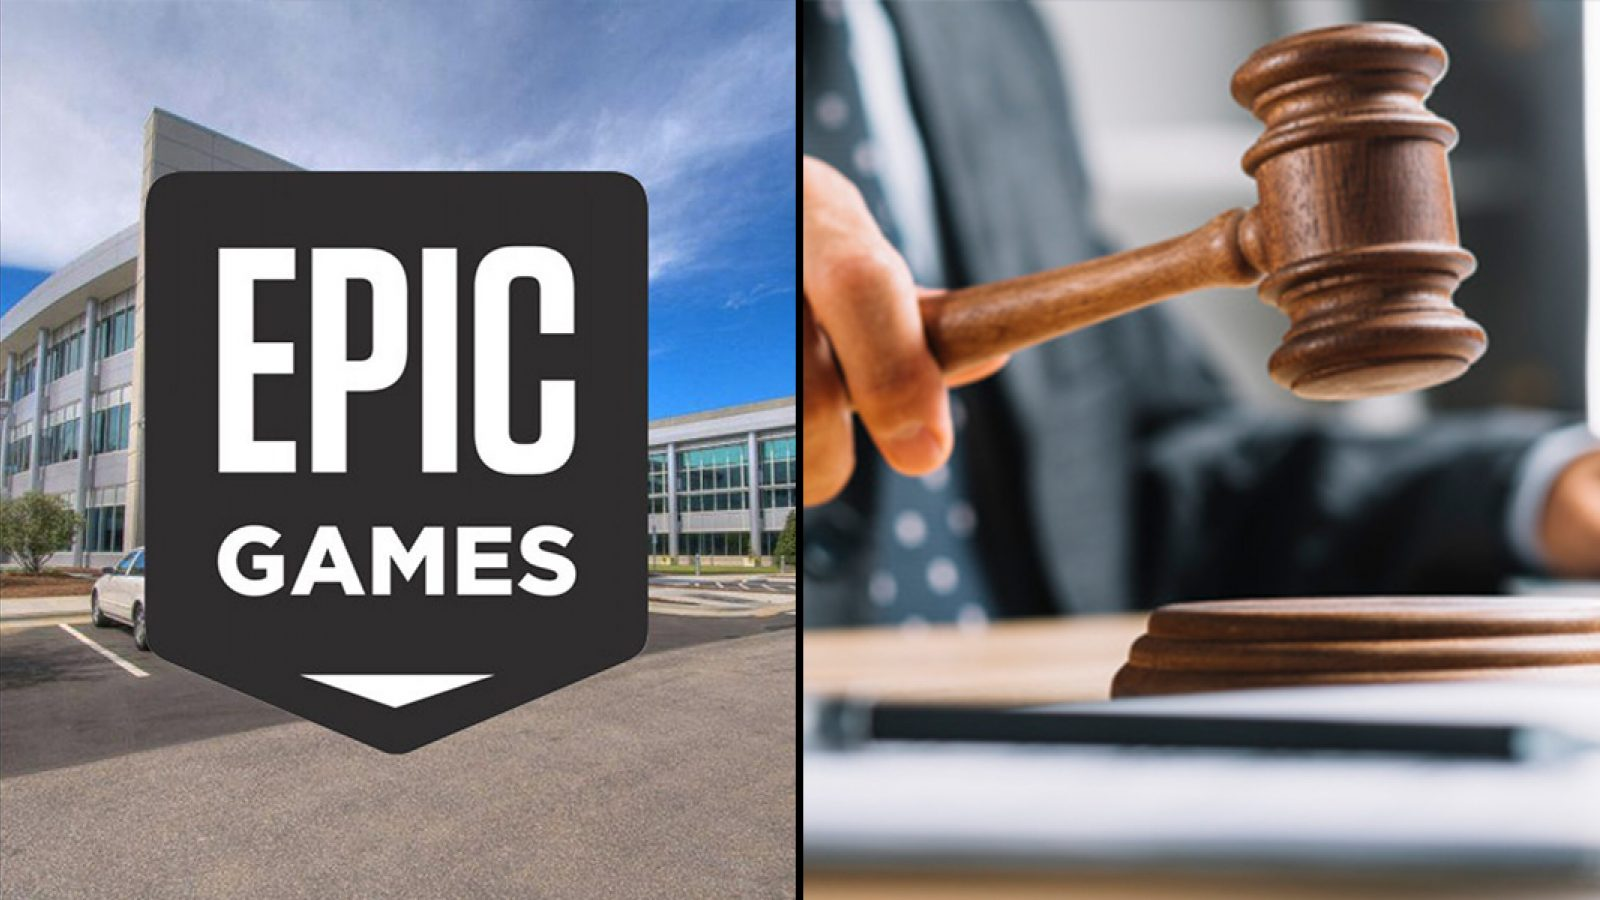 Epic Games Face Class Action Lawsuit For Hacked Fortnite Accounts Dexerto Worlds leading digital accounts marketplace. epic games face class action lawsuit